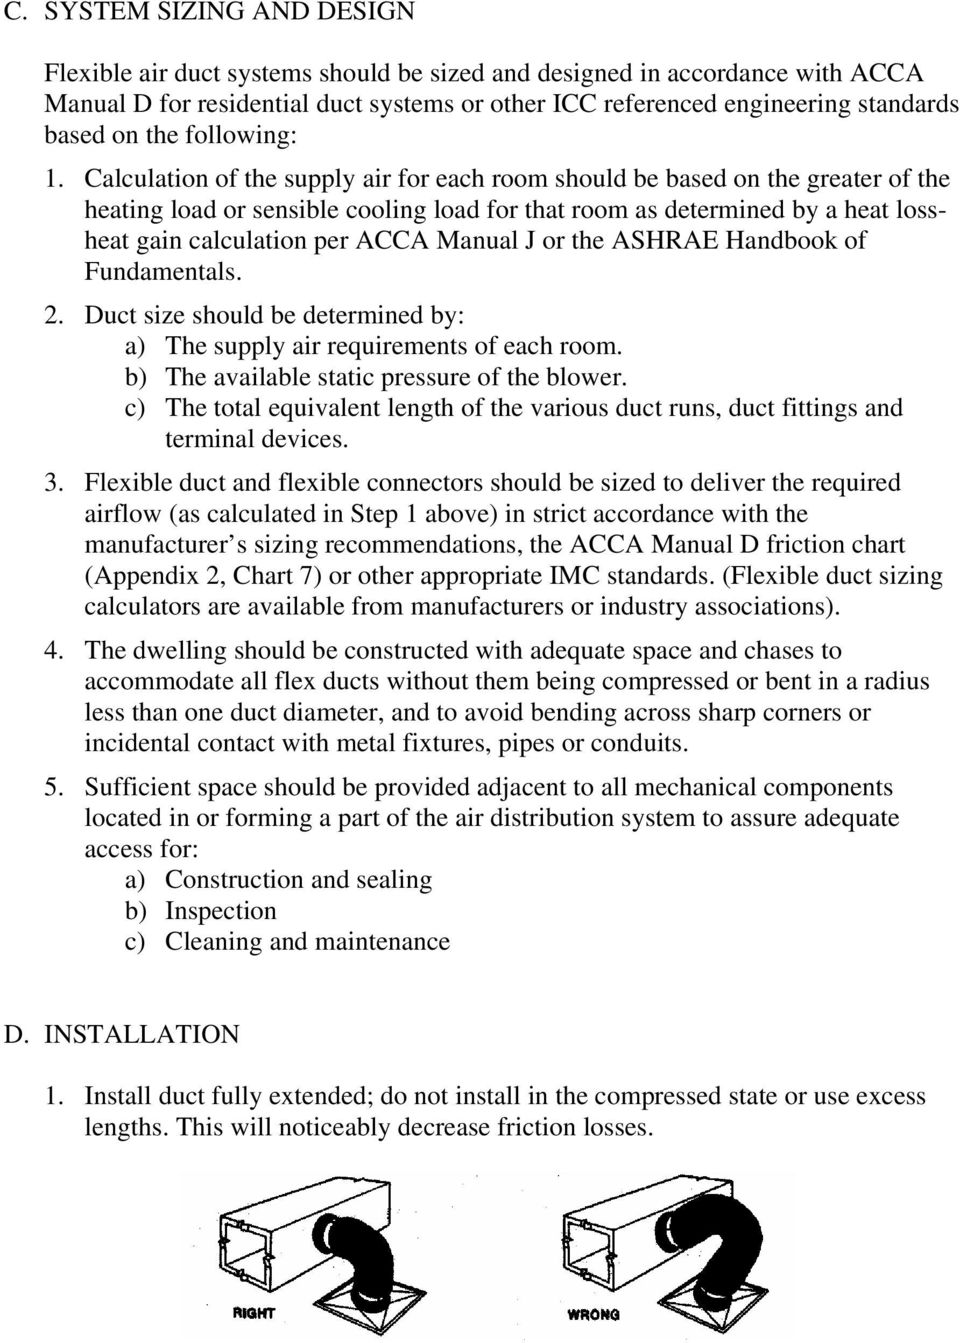 Calculation of the supply air for each room should be based on the greater of the heating load or sensible cooling load for that room as determined by a heat lossheat gain calculation per ACCA Manual